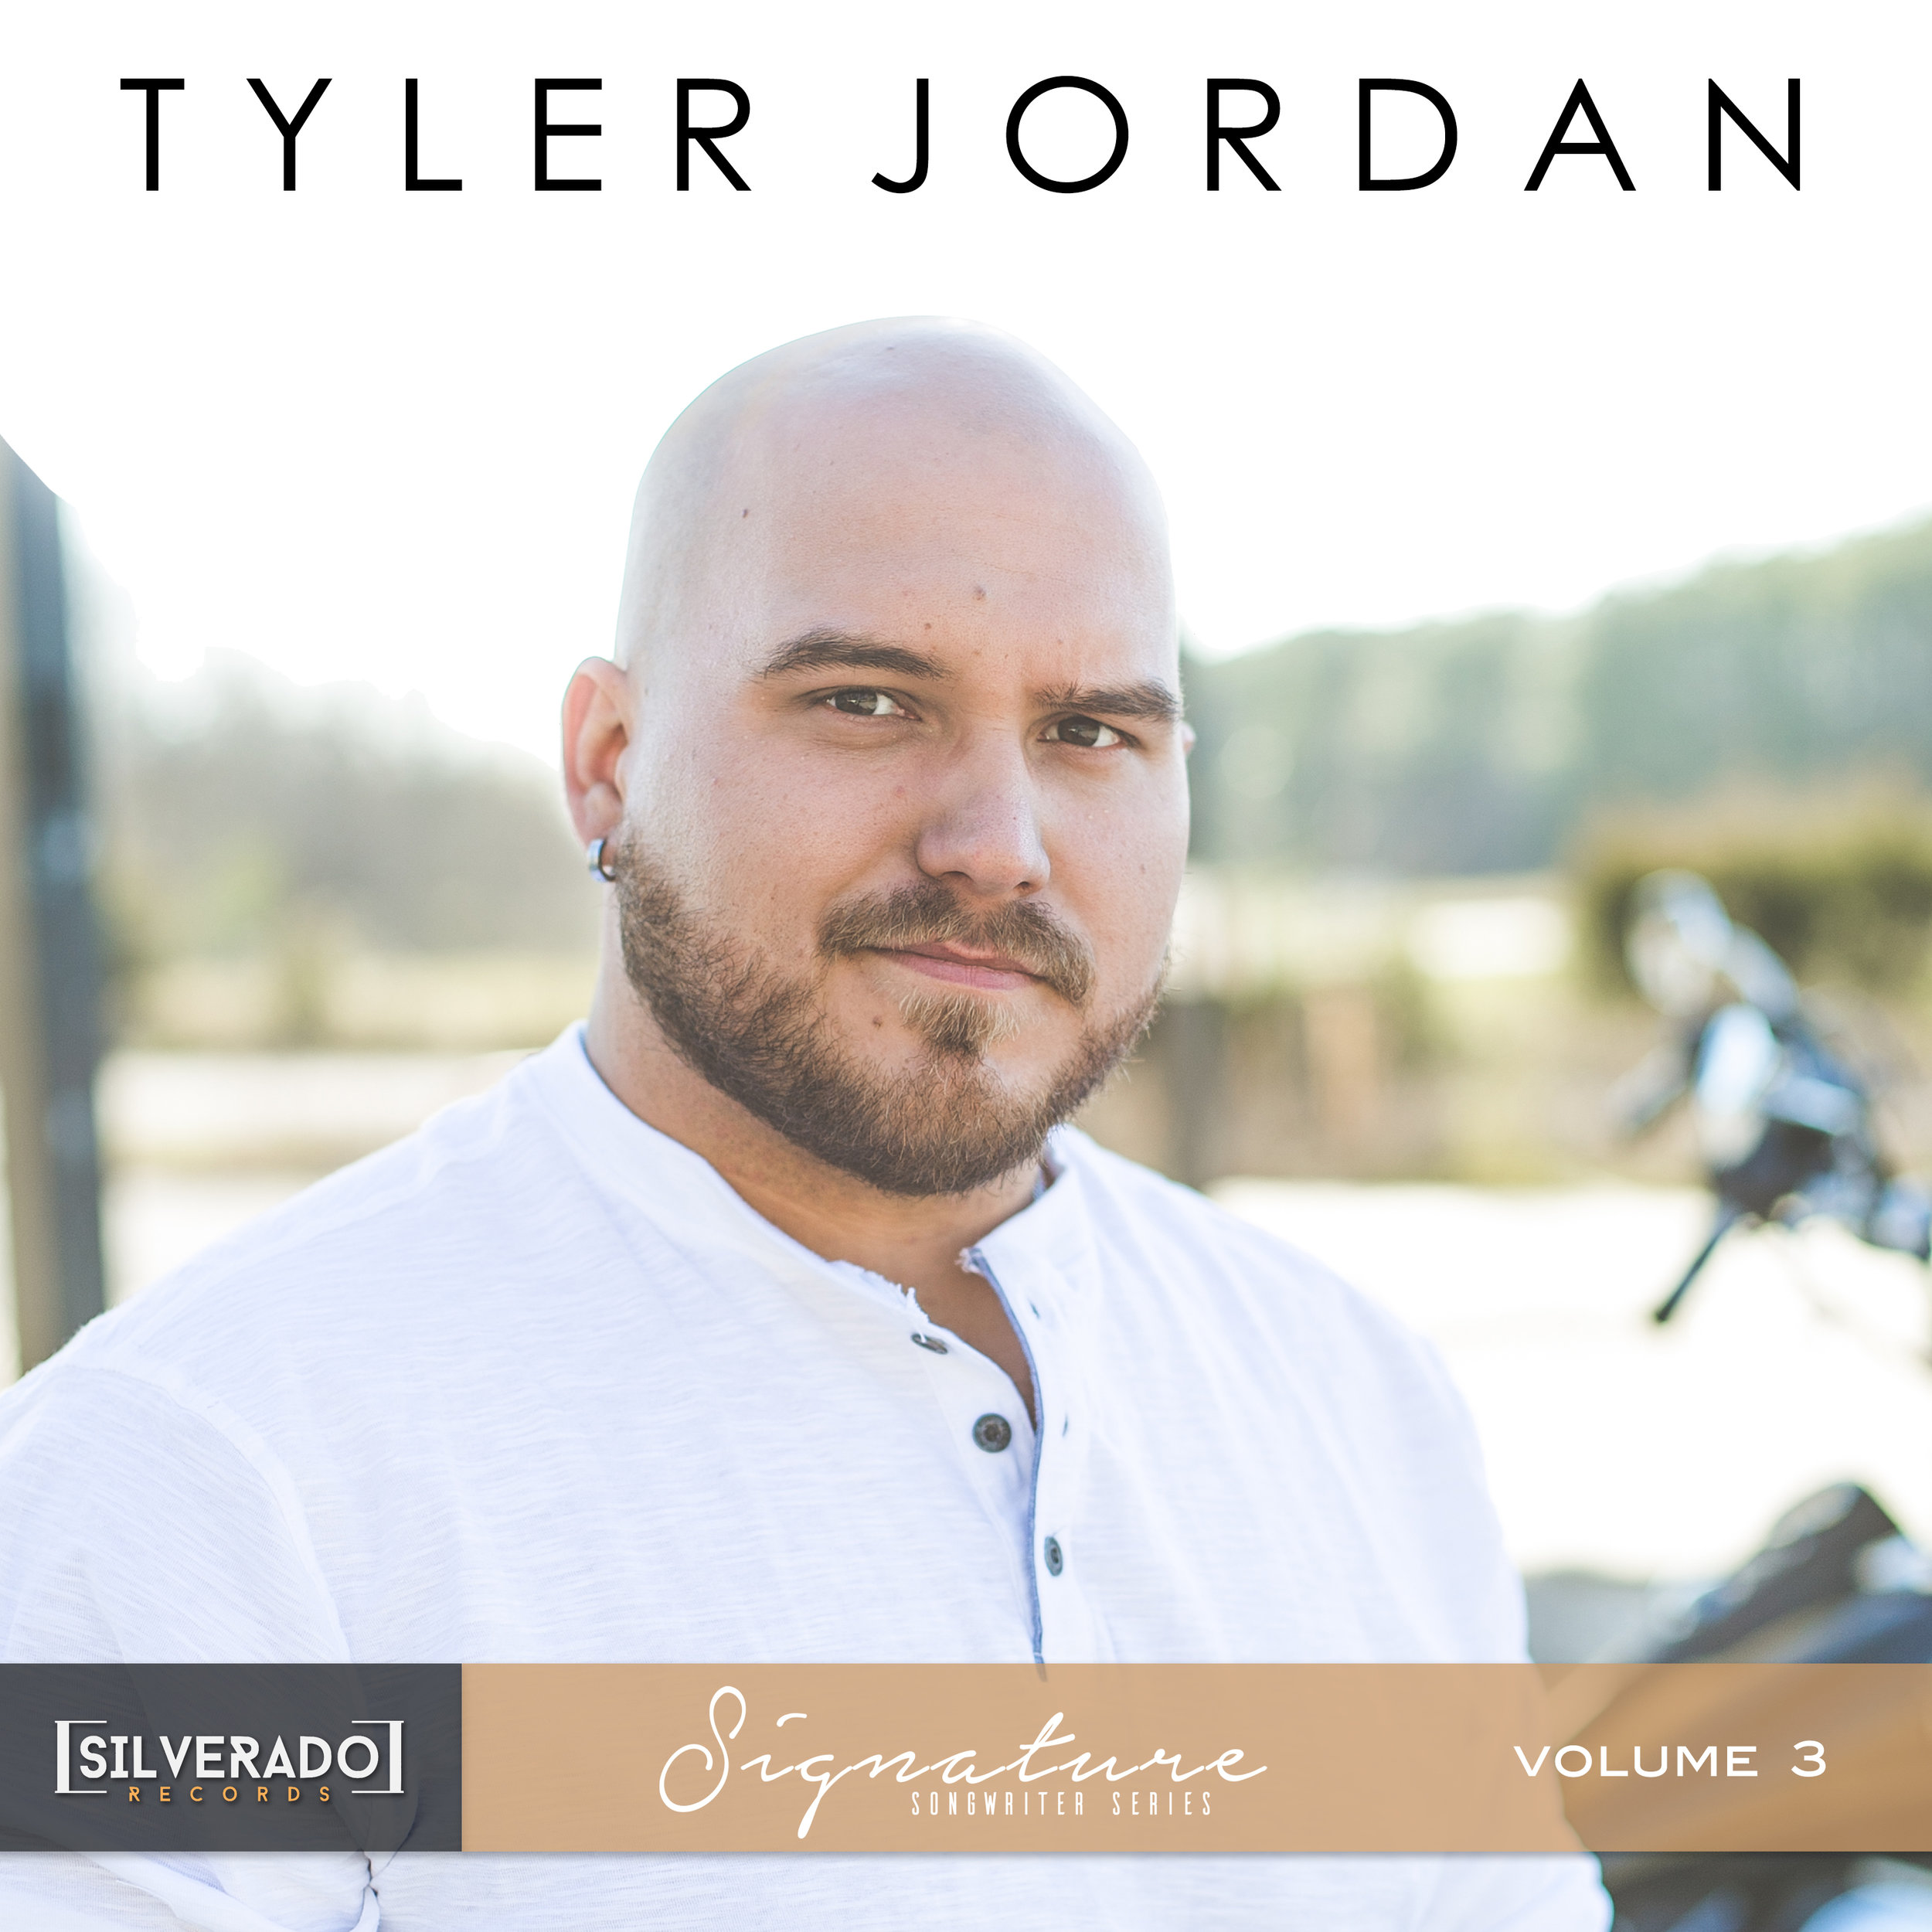 Tyler Jordan - Silverado Signature Songwriter Series Vol. 3 - Produced by Chad CarlsonSpotifyApple Music